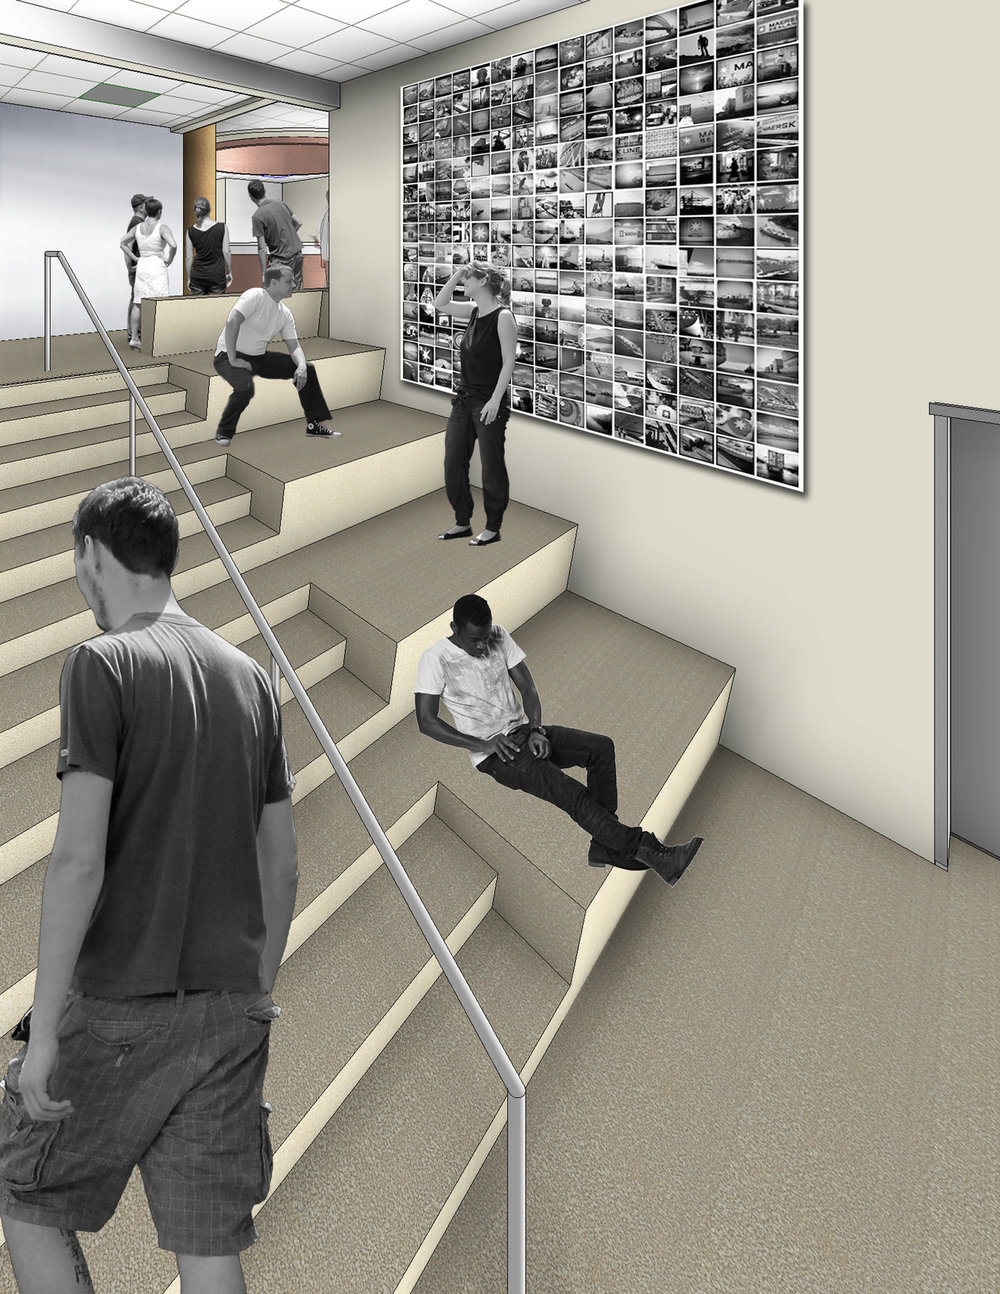 A stairway can easily become an alternate learning space